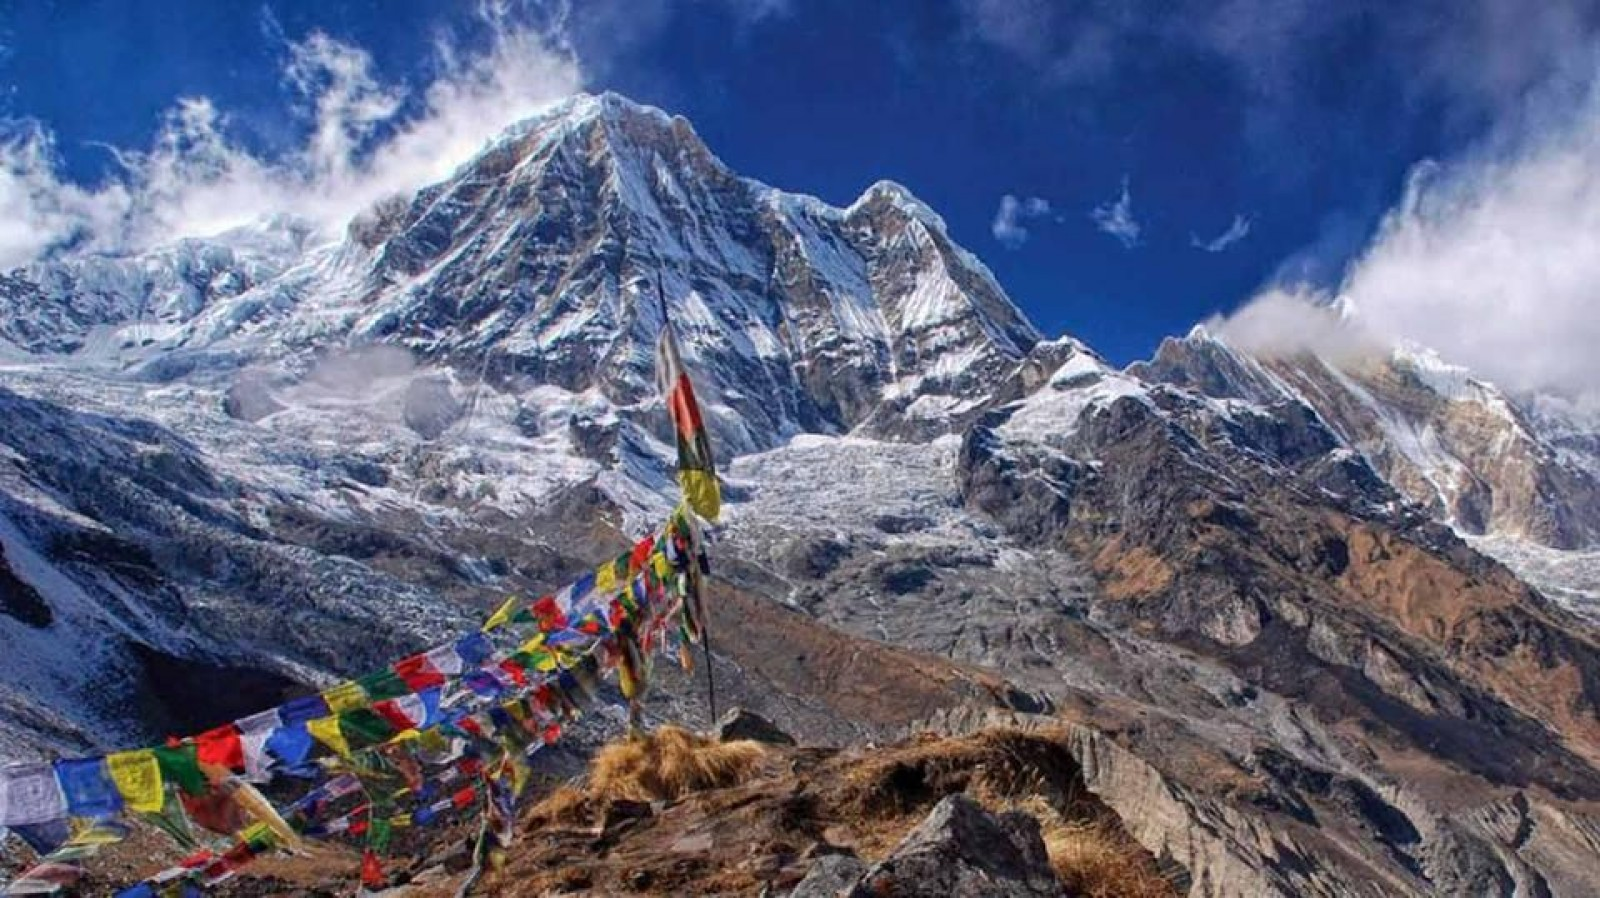 15-day trek to Annapurna Base Camp